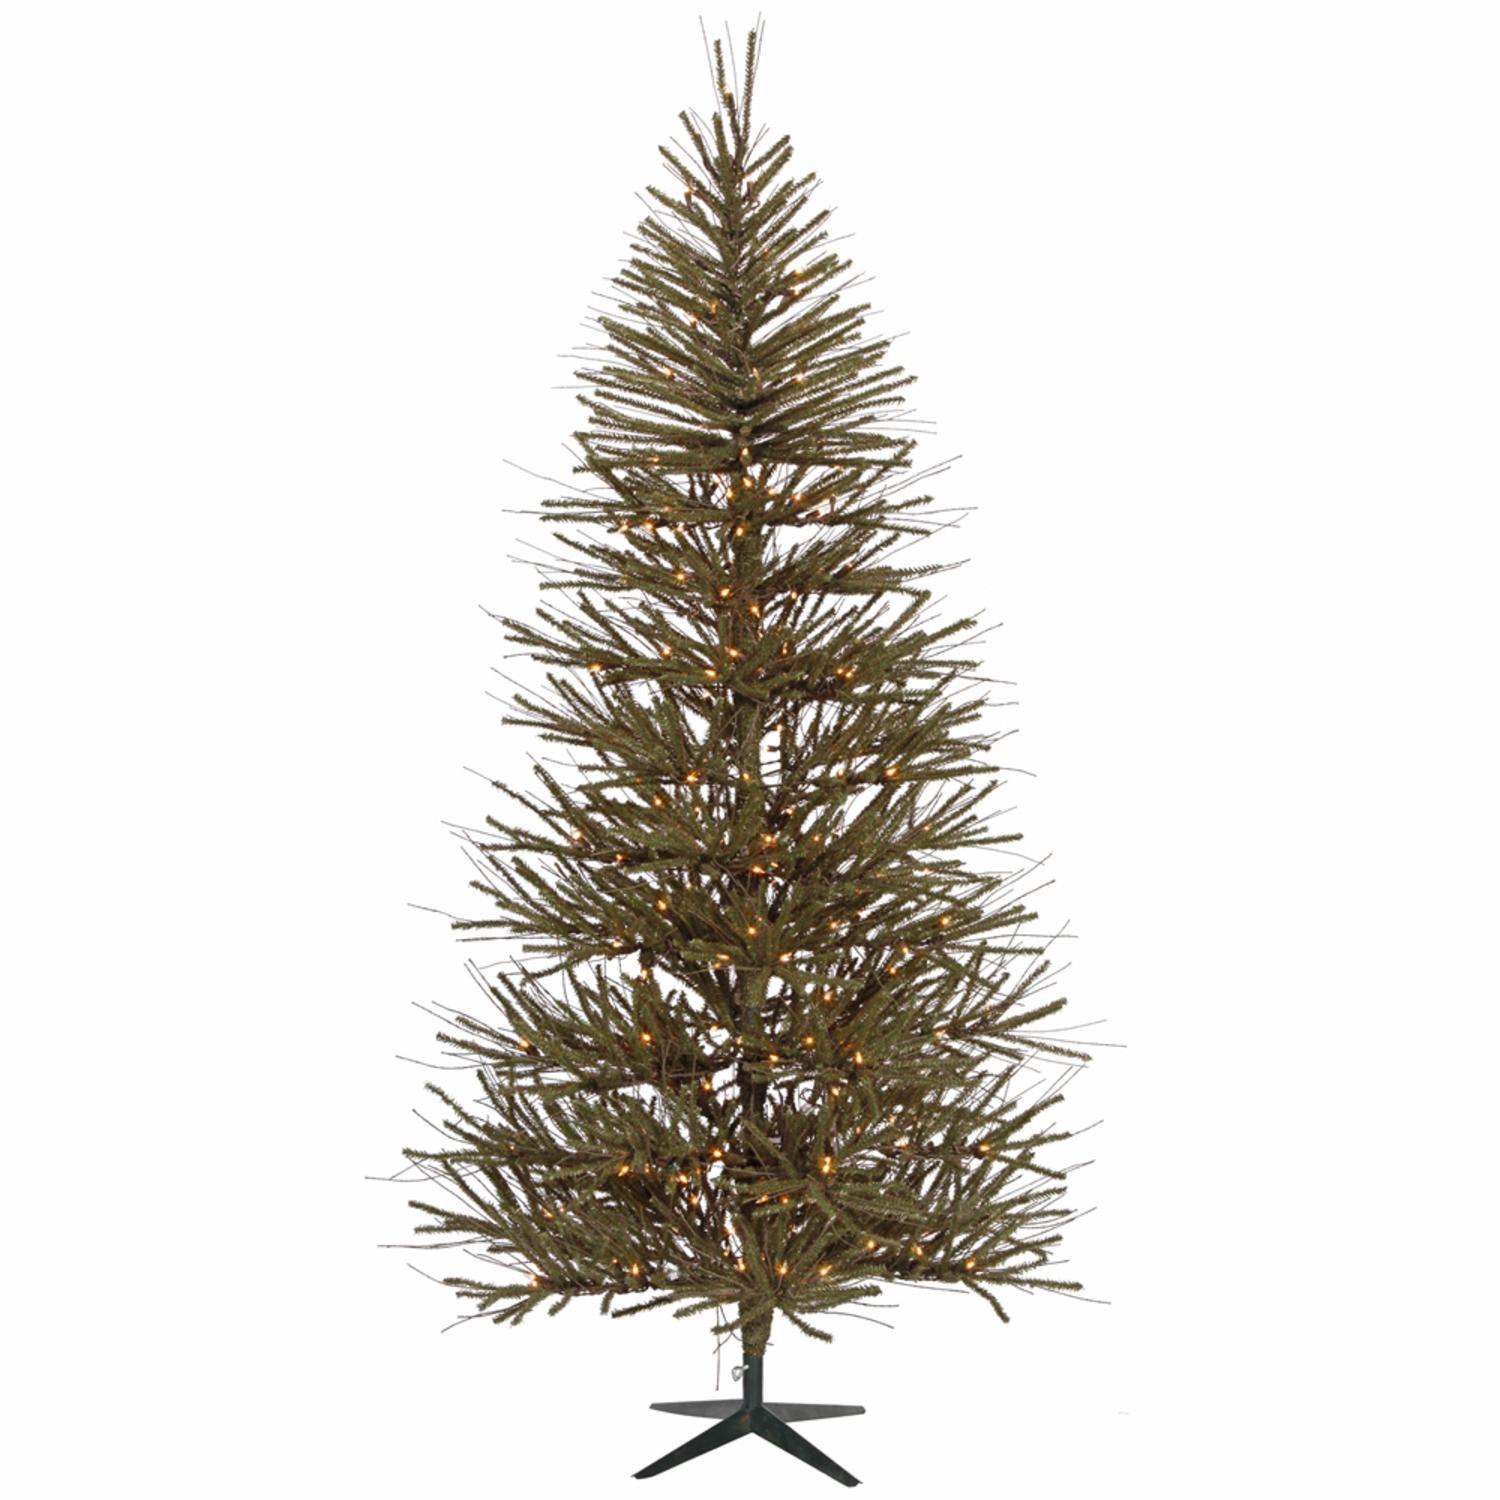 8' Pre-Lit Slim Vienna Twig Artificial Christmas Tree - Clear Lights